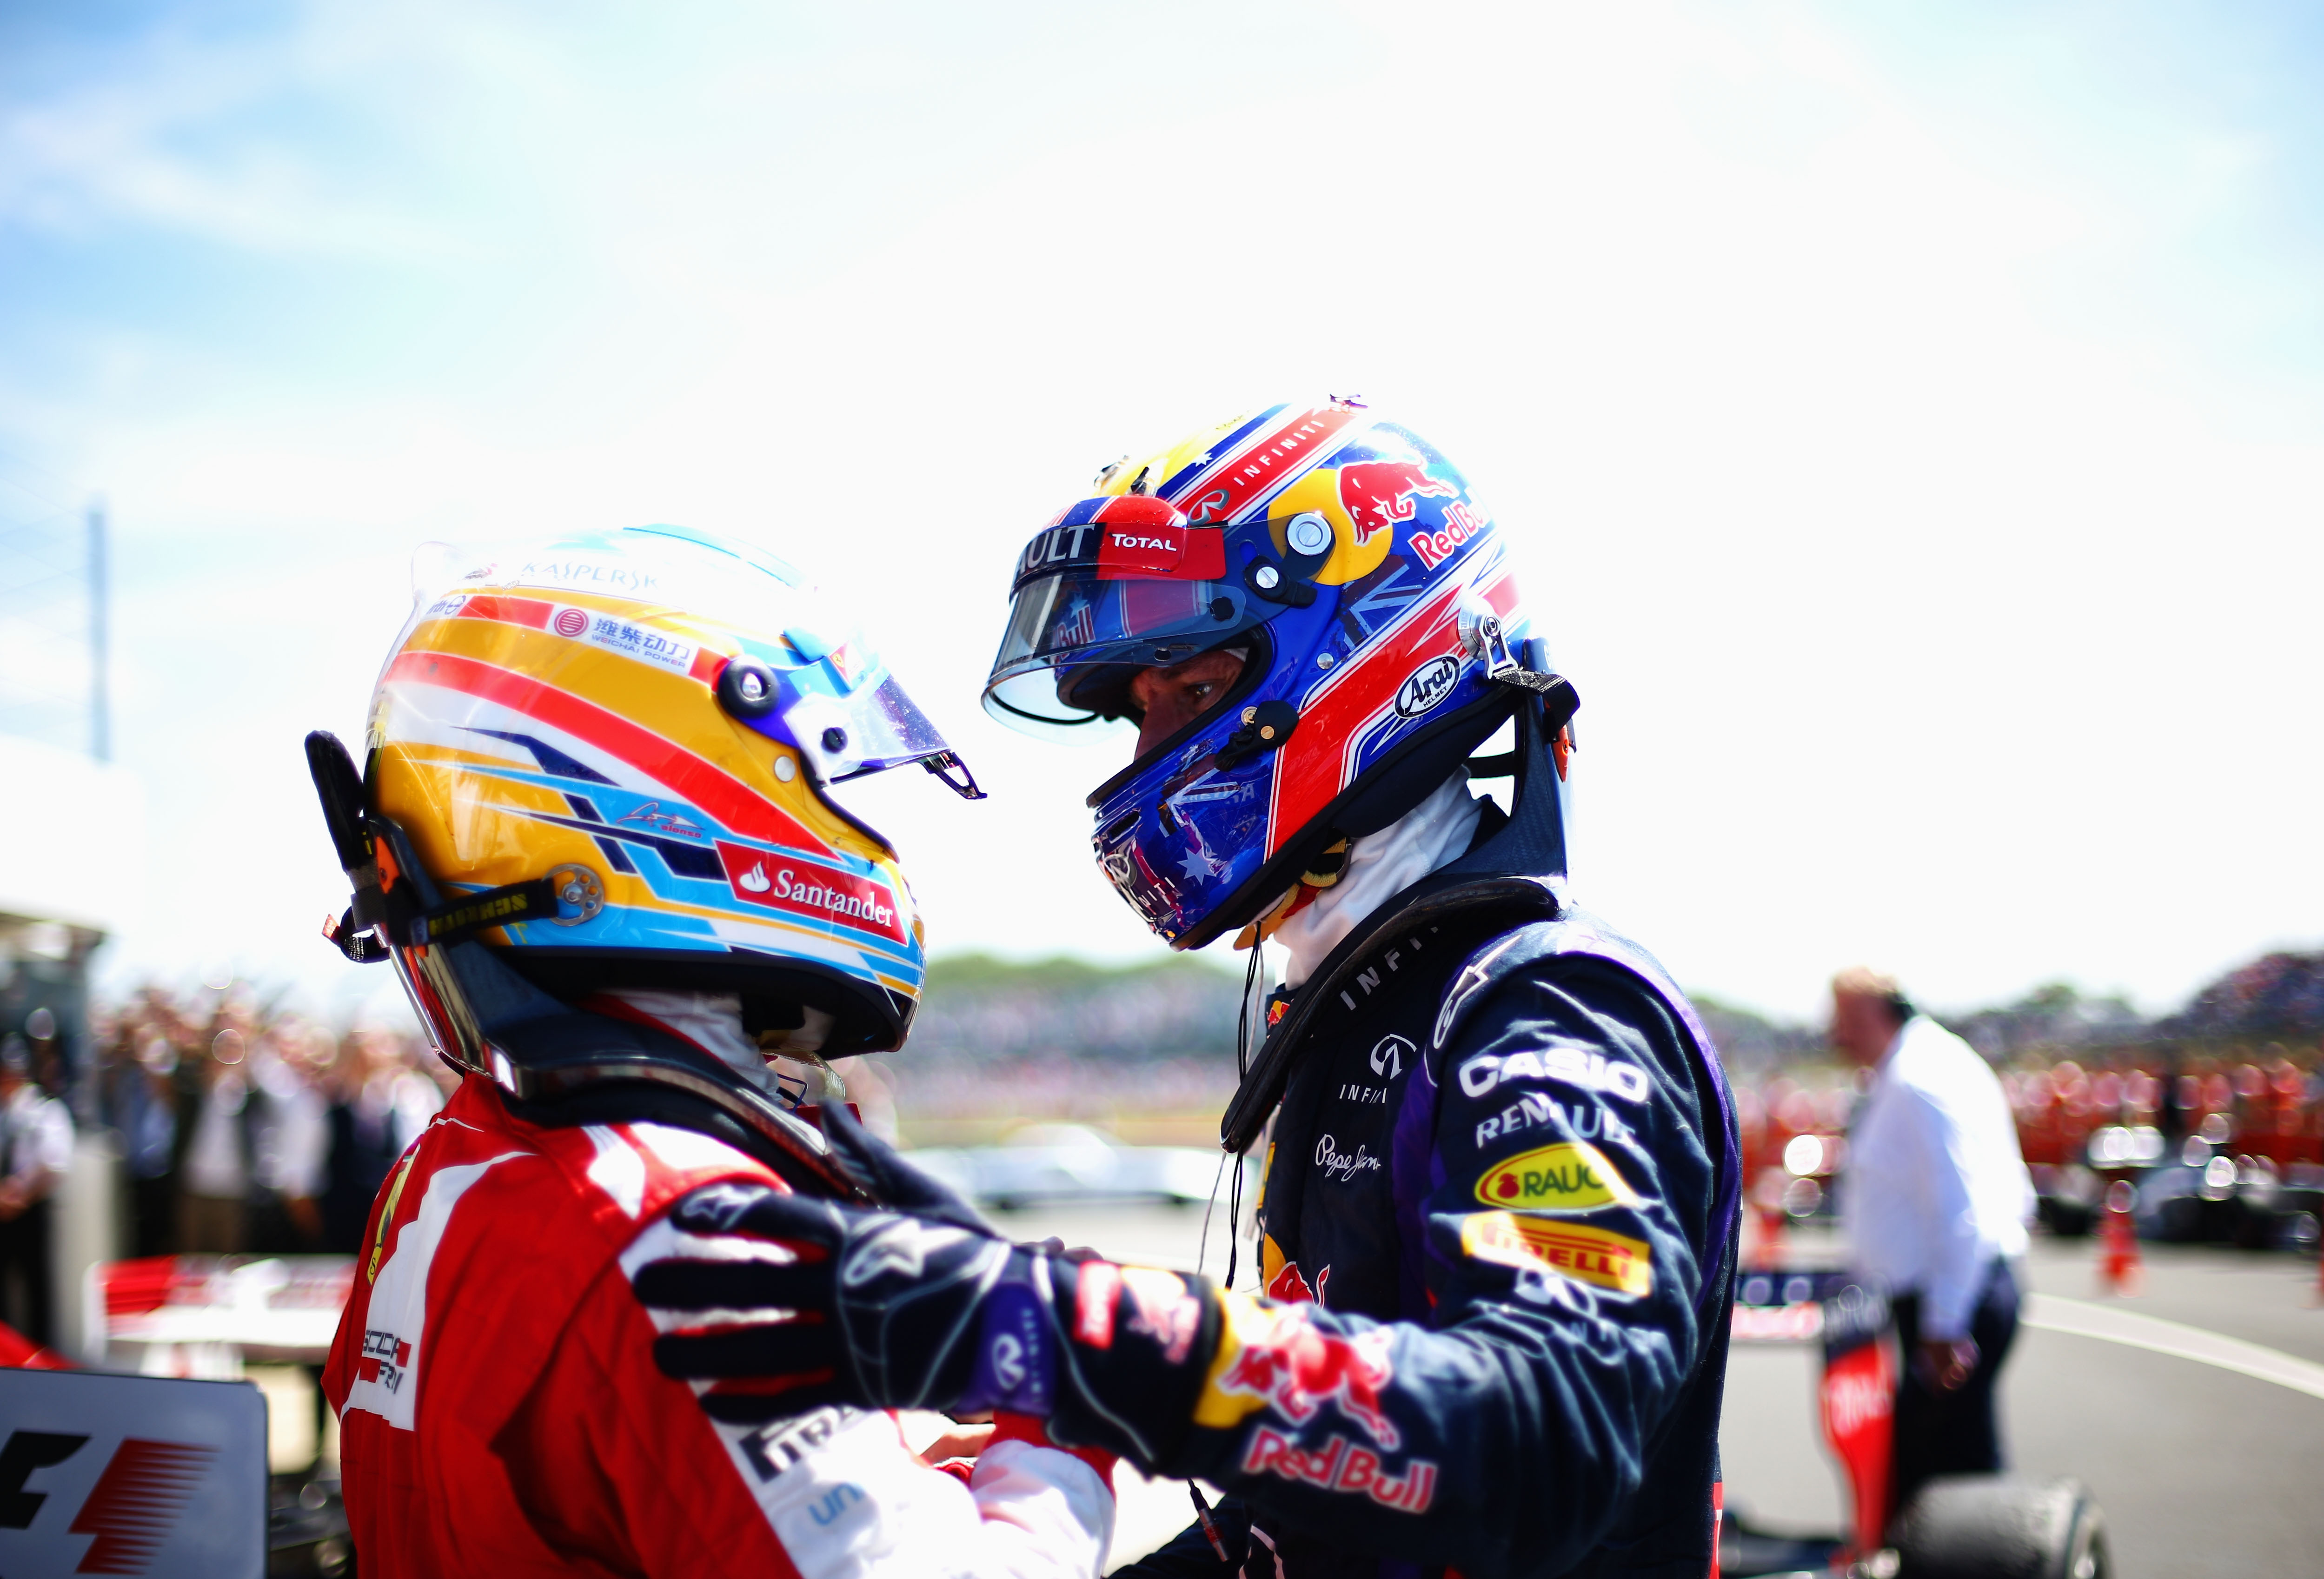 Webber e Alonso, attacco alle gomme